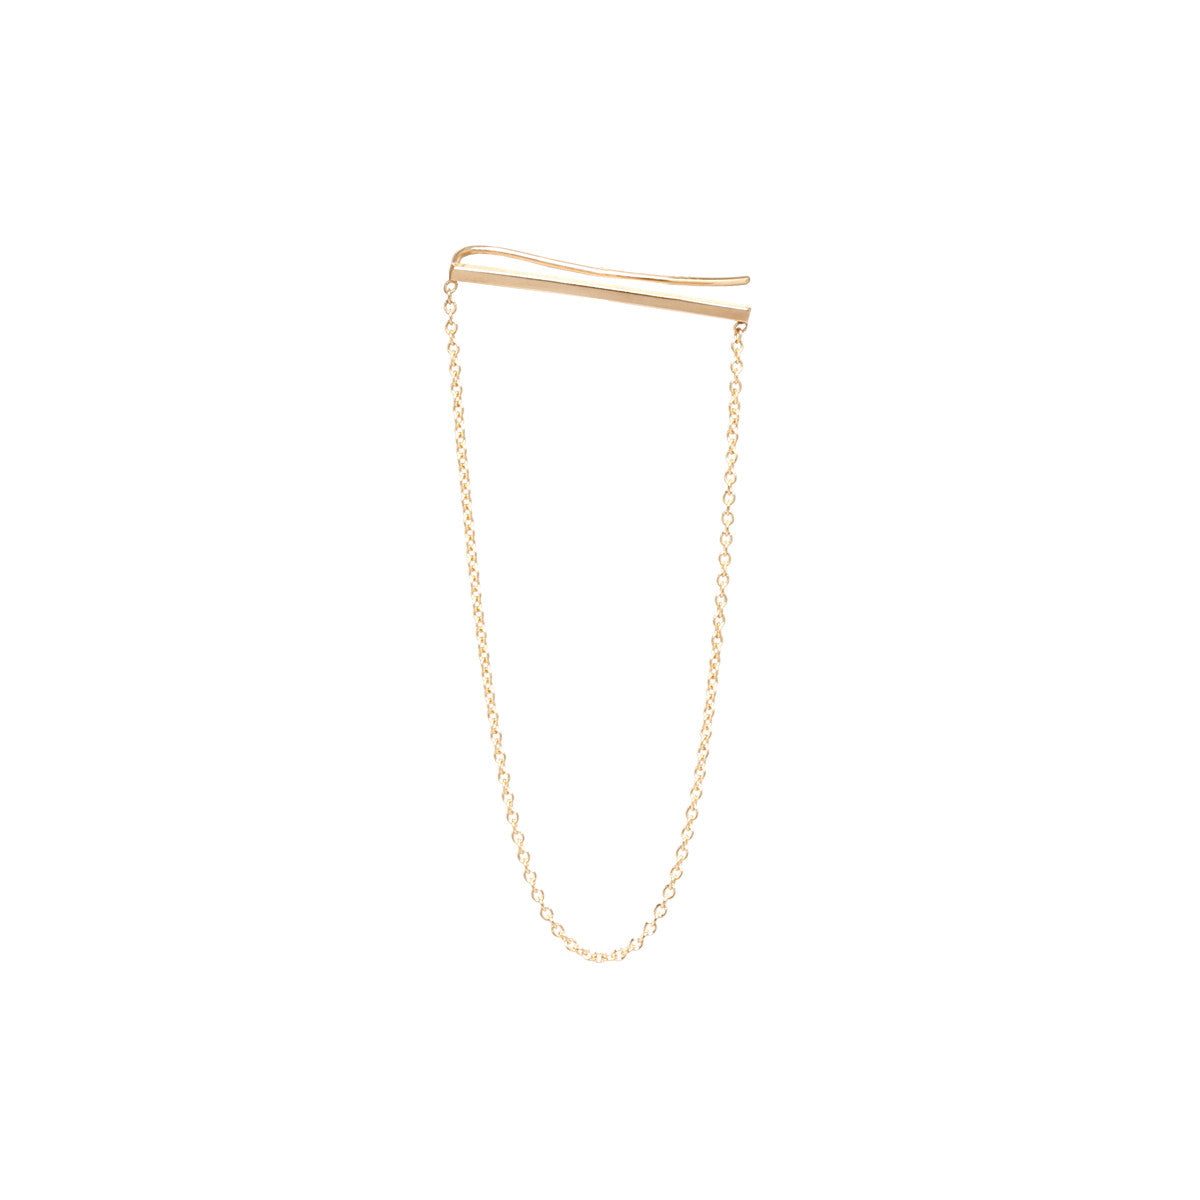 Zoë Chicco 14kt Yellow Gold Ear Shield With Hanging Chain Earring